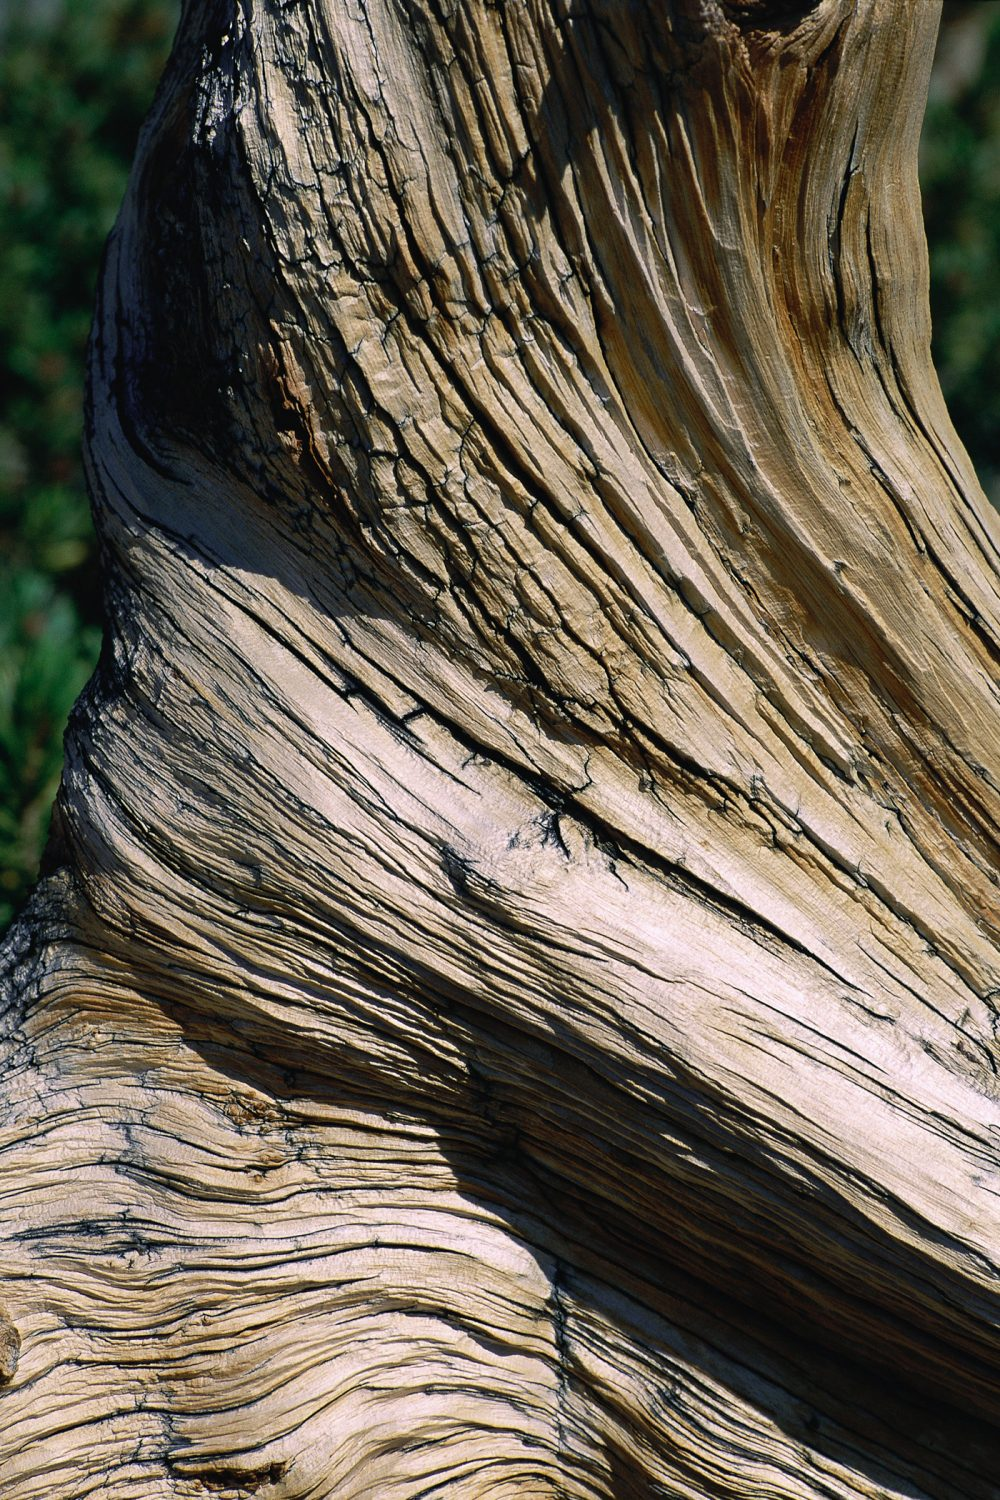 The Adobe Image Library ©1998 Adobe Systems Incorporated  Eroded wood, close-up